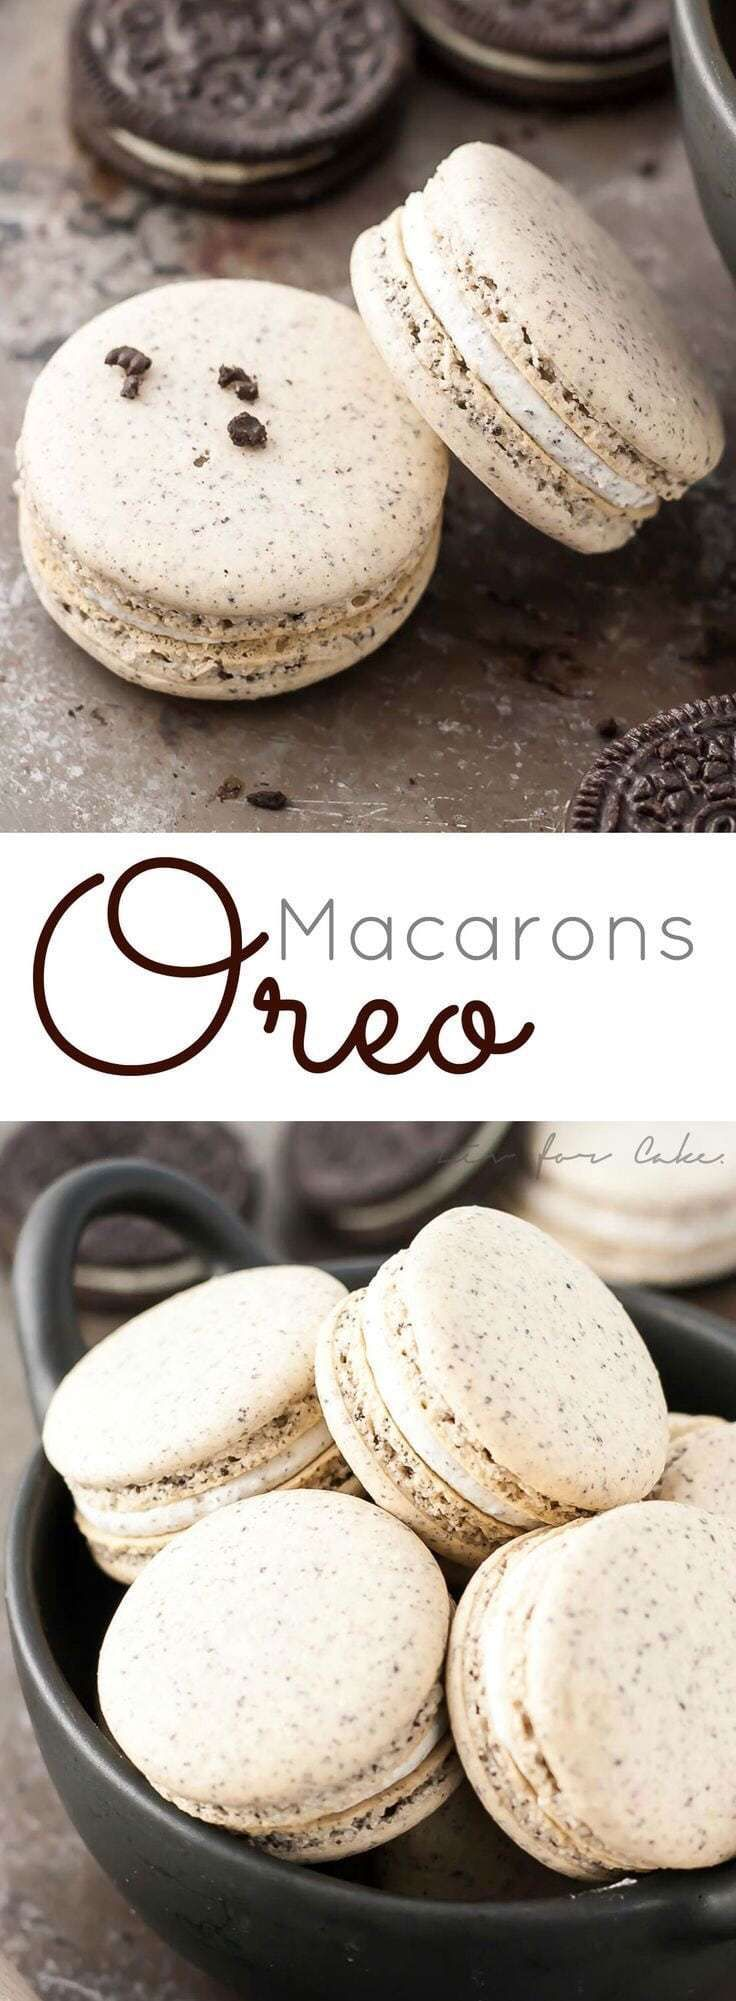 25 HOLIDAY OREO INFUSED RECIPES A NIBBLE OF HEAVEN   The Lifestyle Hacks   Food Recipes, Fitness, & DIY is part of Macaron recipe -